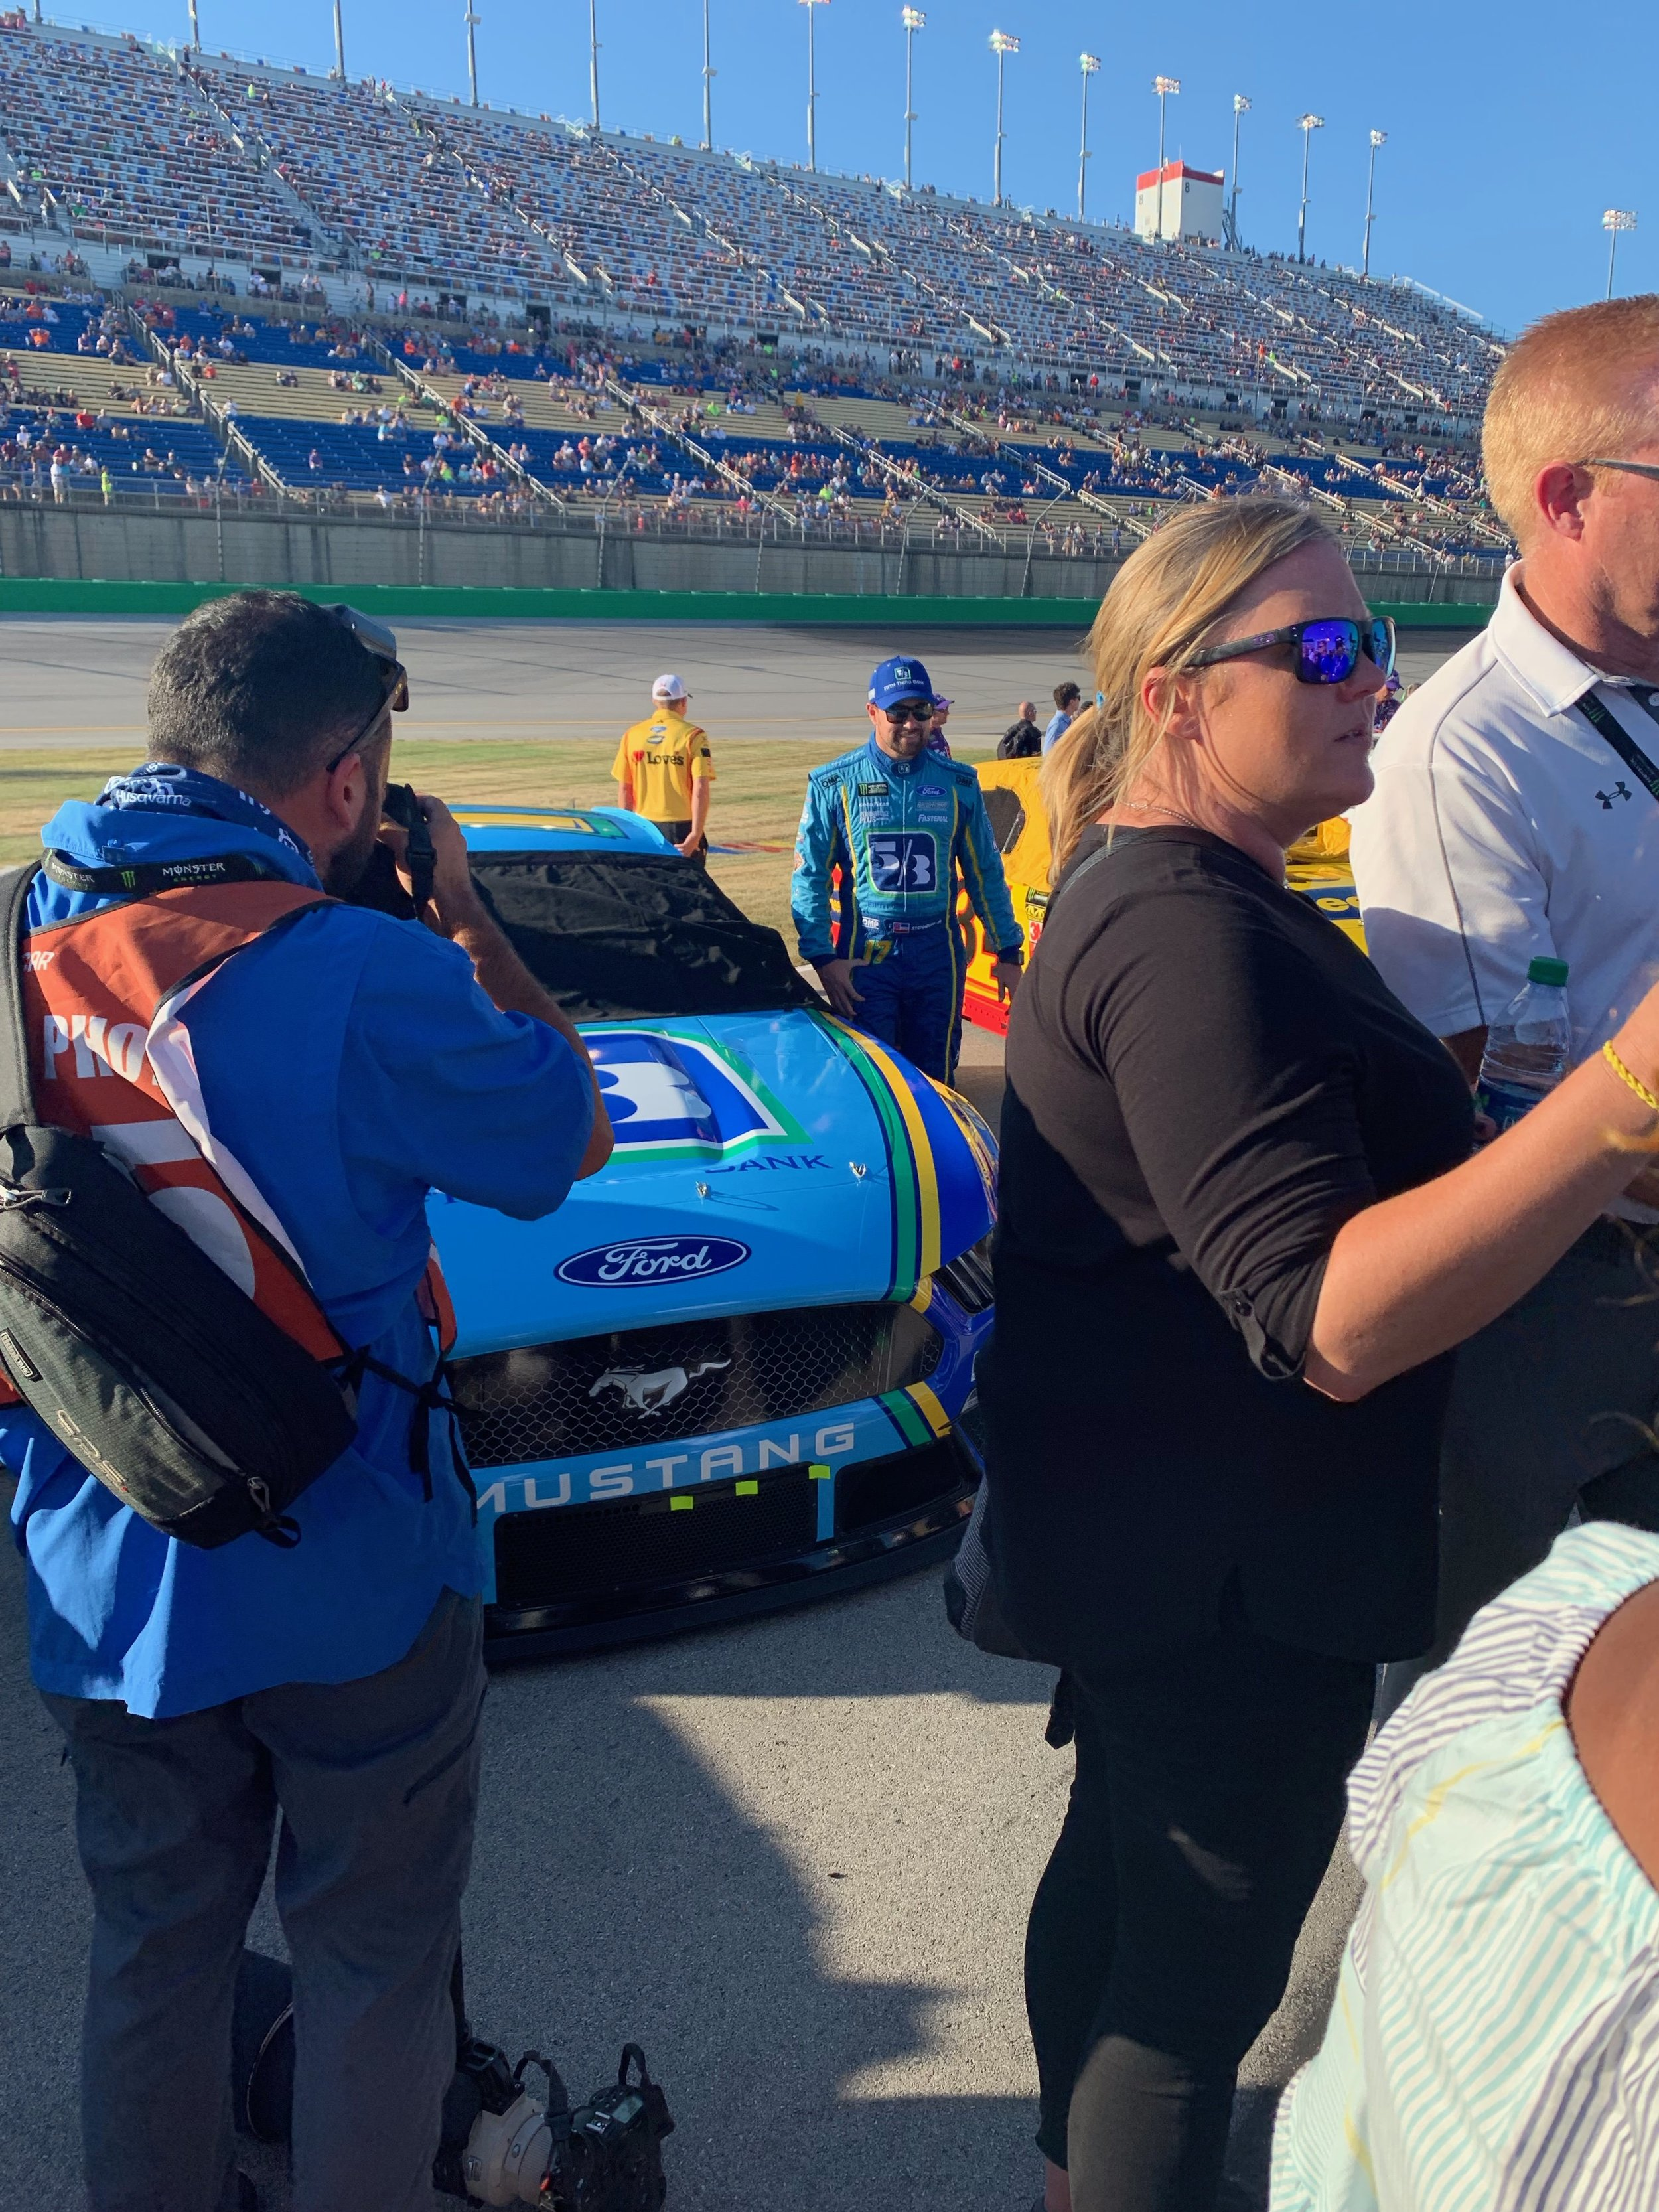 Ricky Stenhouse Jr Stands by his Car before Opening Ceremony